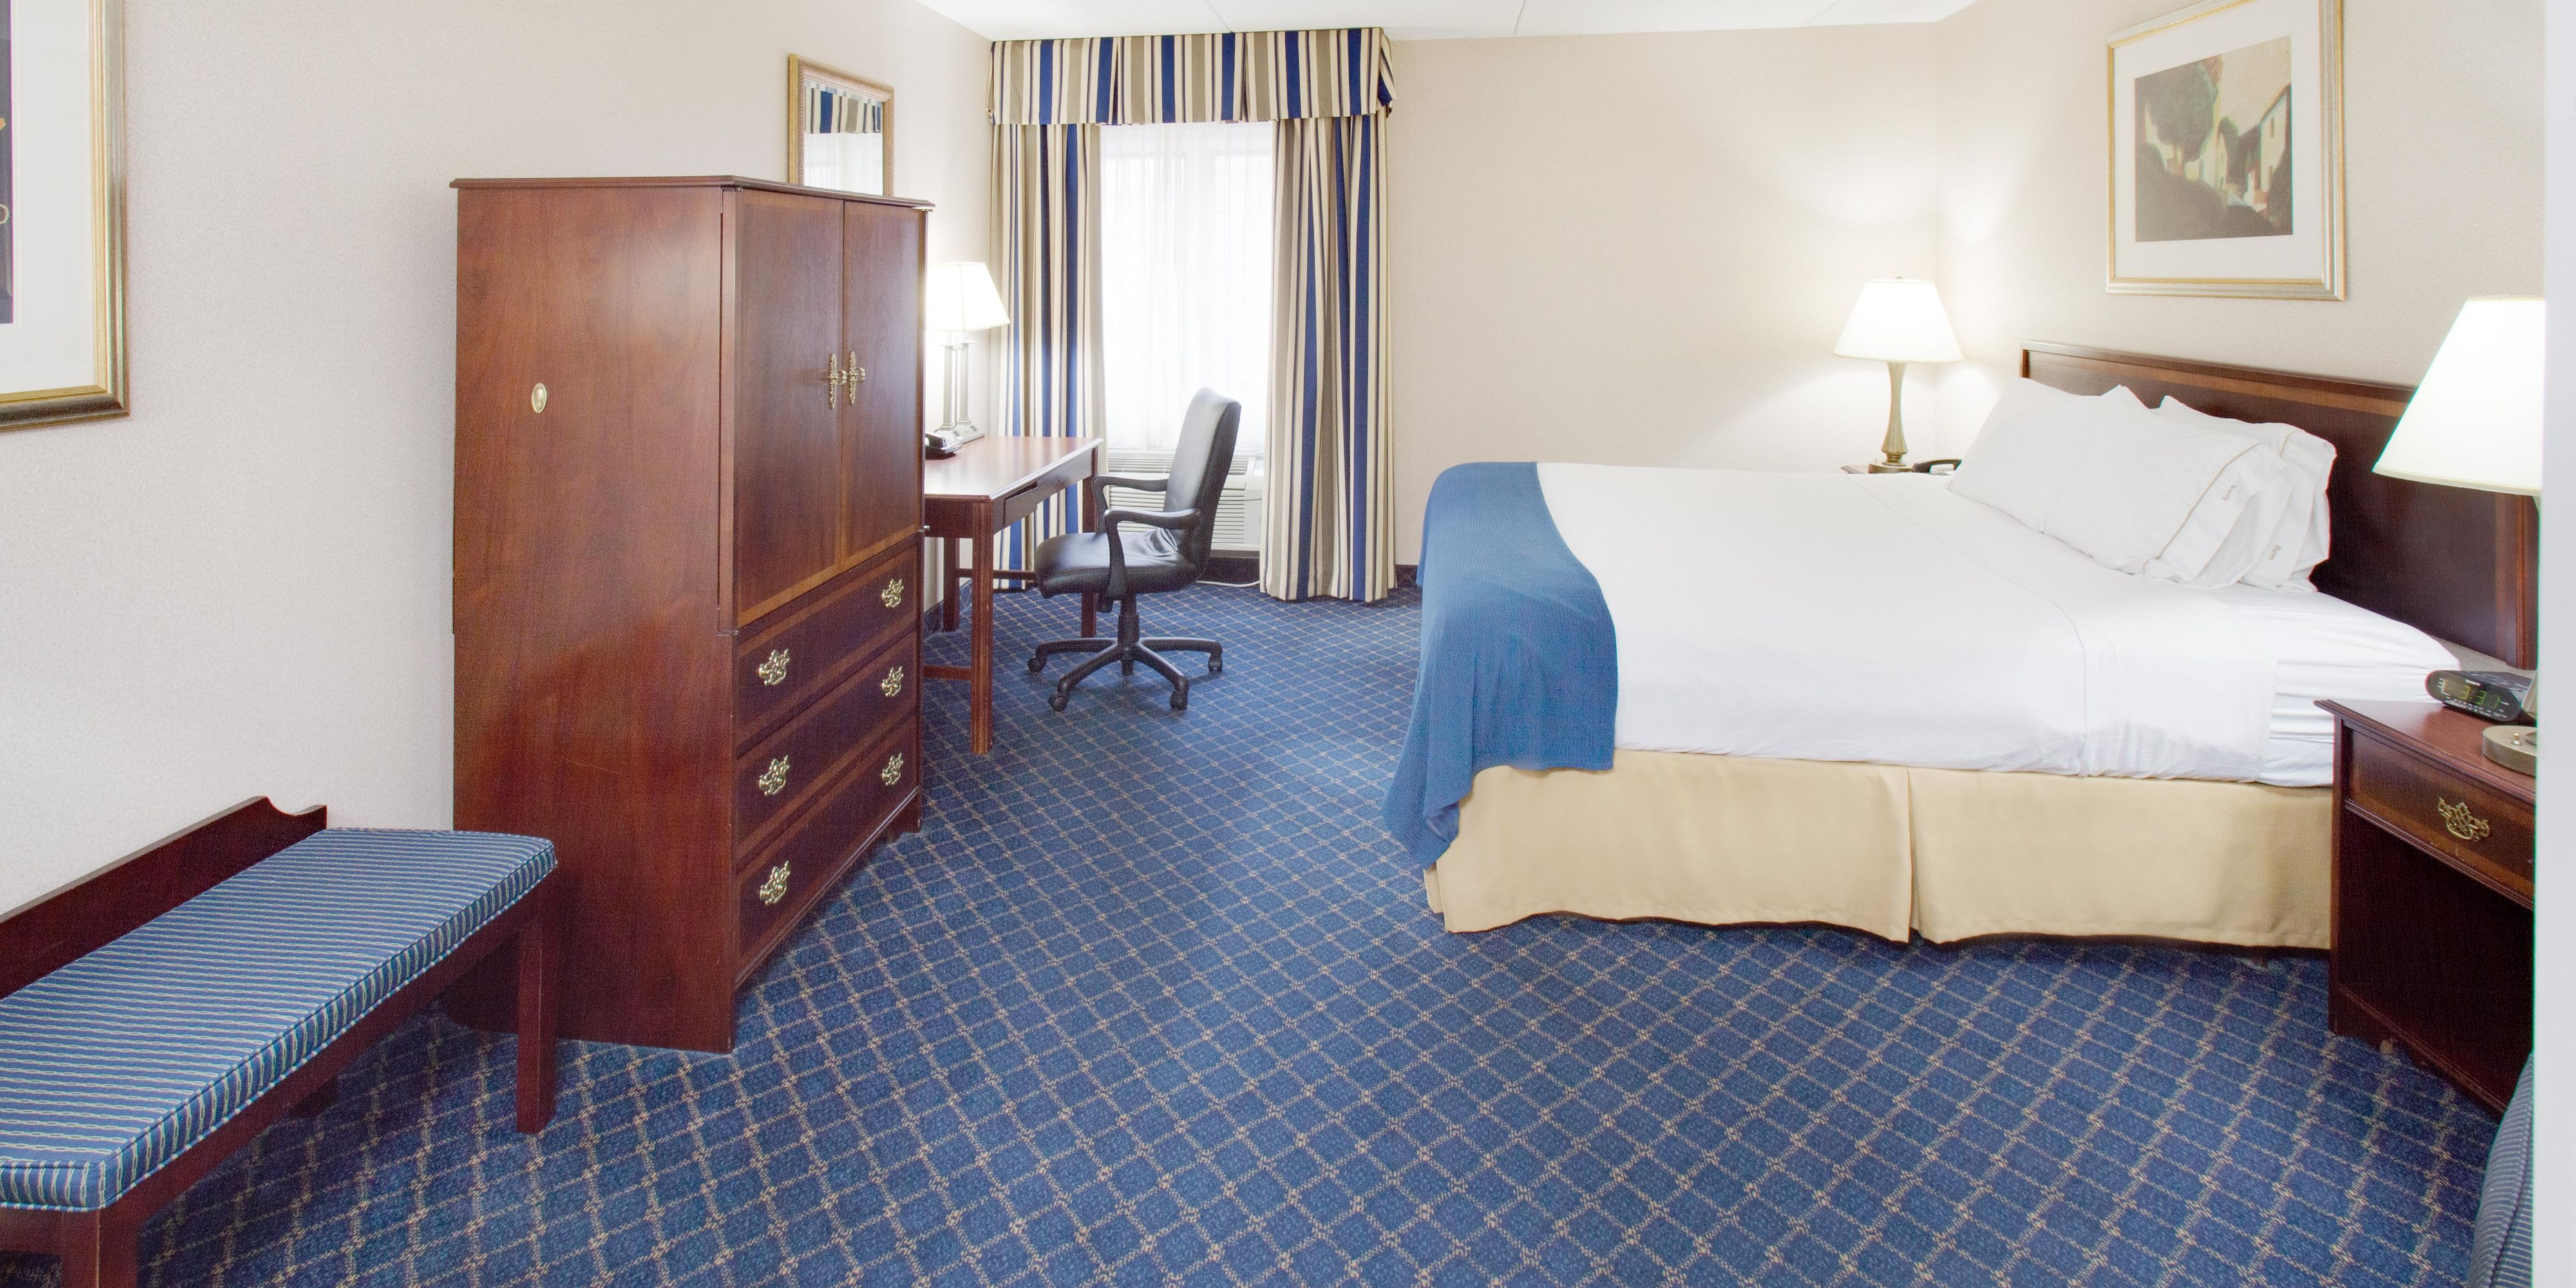 Wonderful Furniture Source Des Moines #8: Holiday-inn-express-des-moines-4240272895-2x1